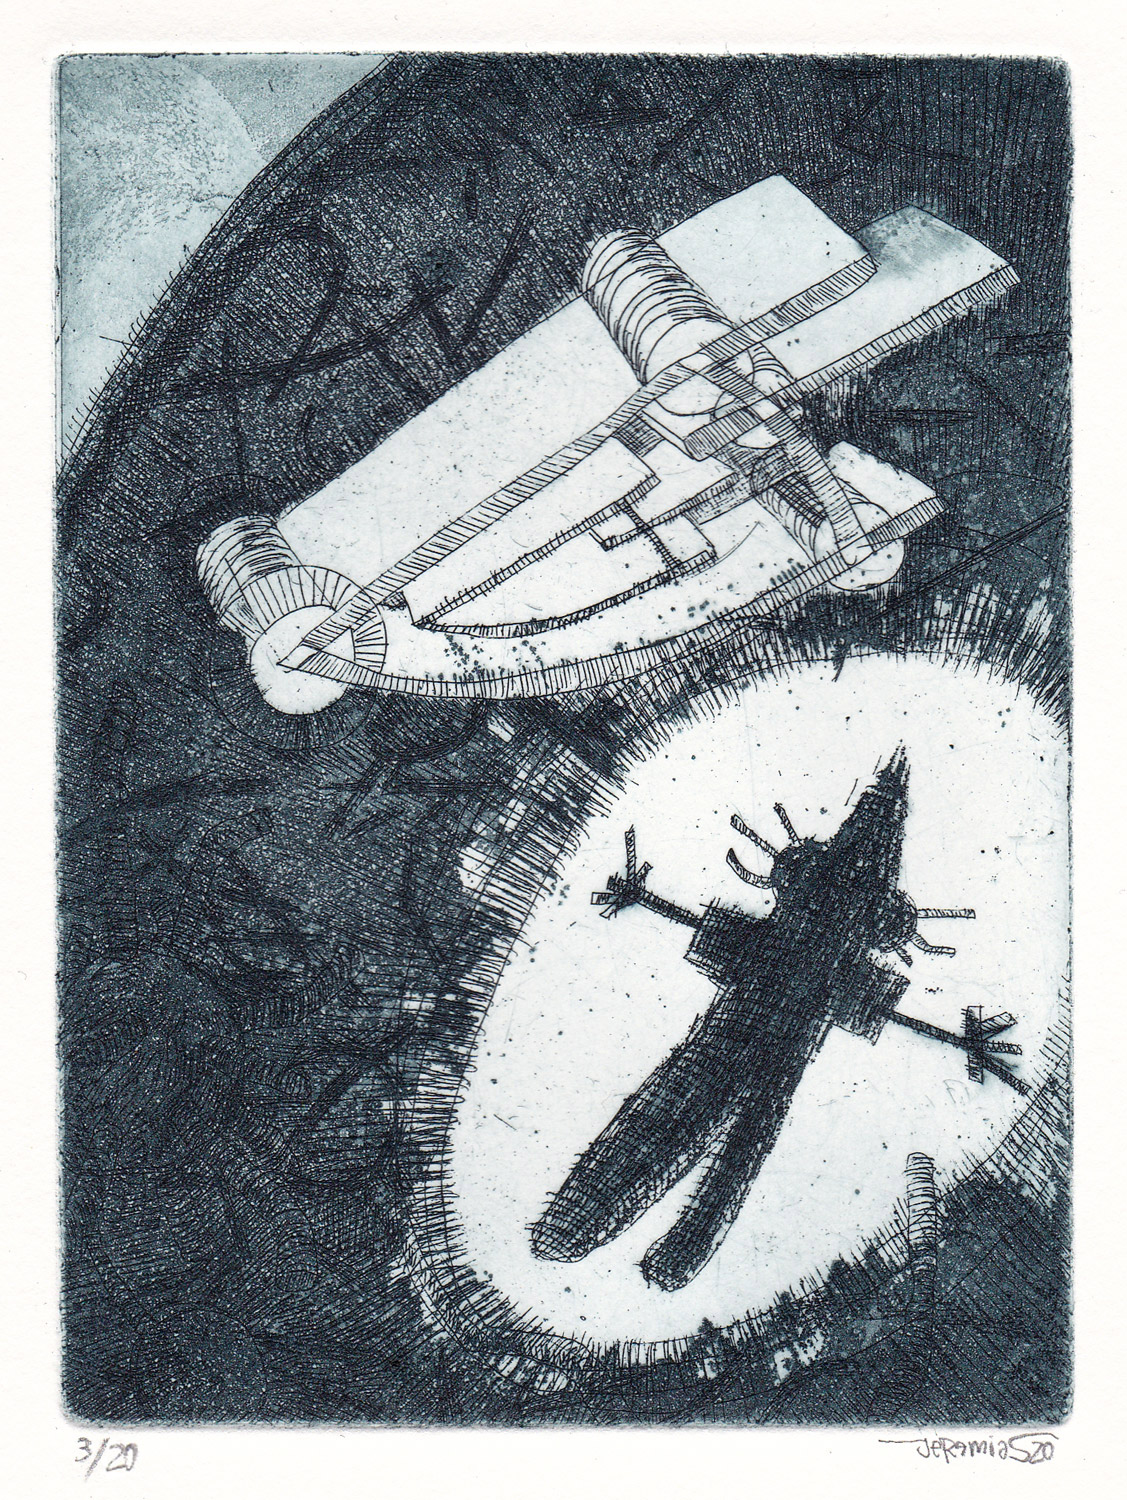 Passenger; 11 x 14 cm; etching on etching paper; edition of 20; 2020